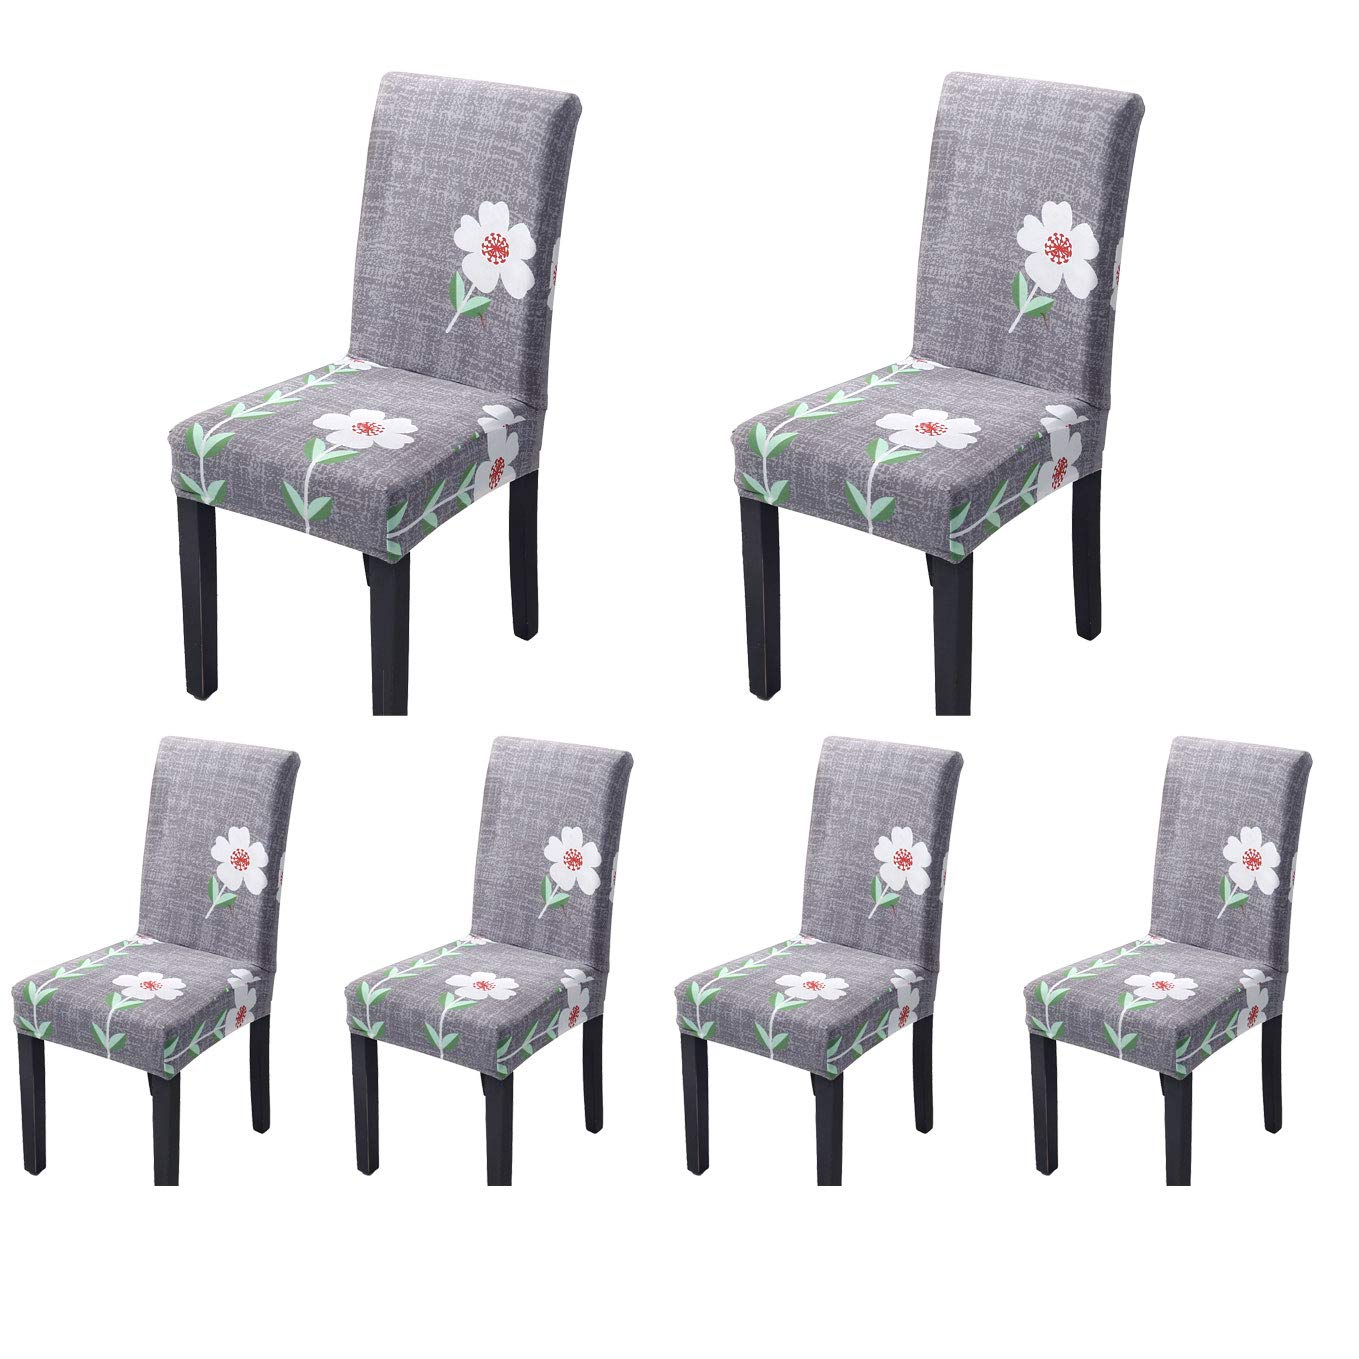 SoulFeel Stretch Spandex Dining Room Chair Protector Slipcovers, Set of 6 (Style 44, Daisy Flower) by SoulFeel